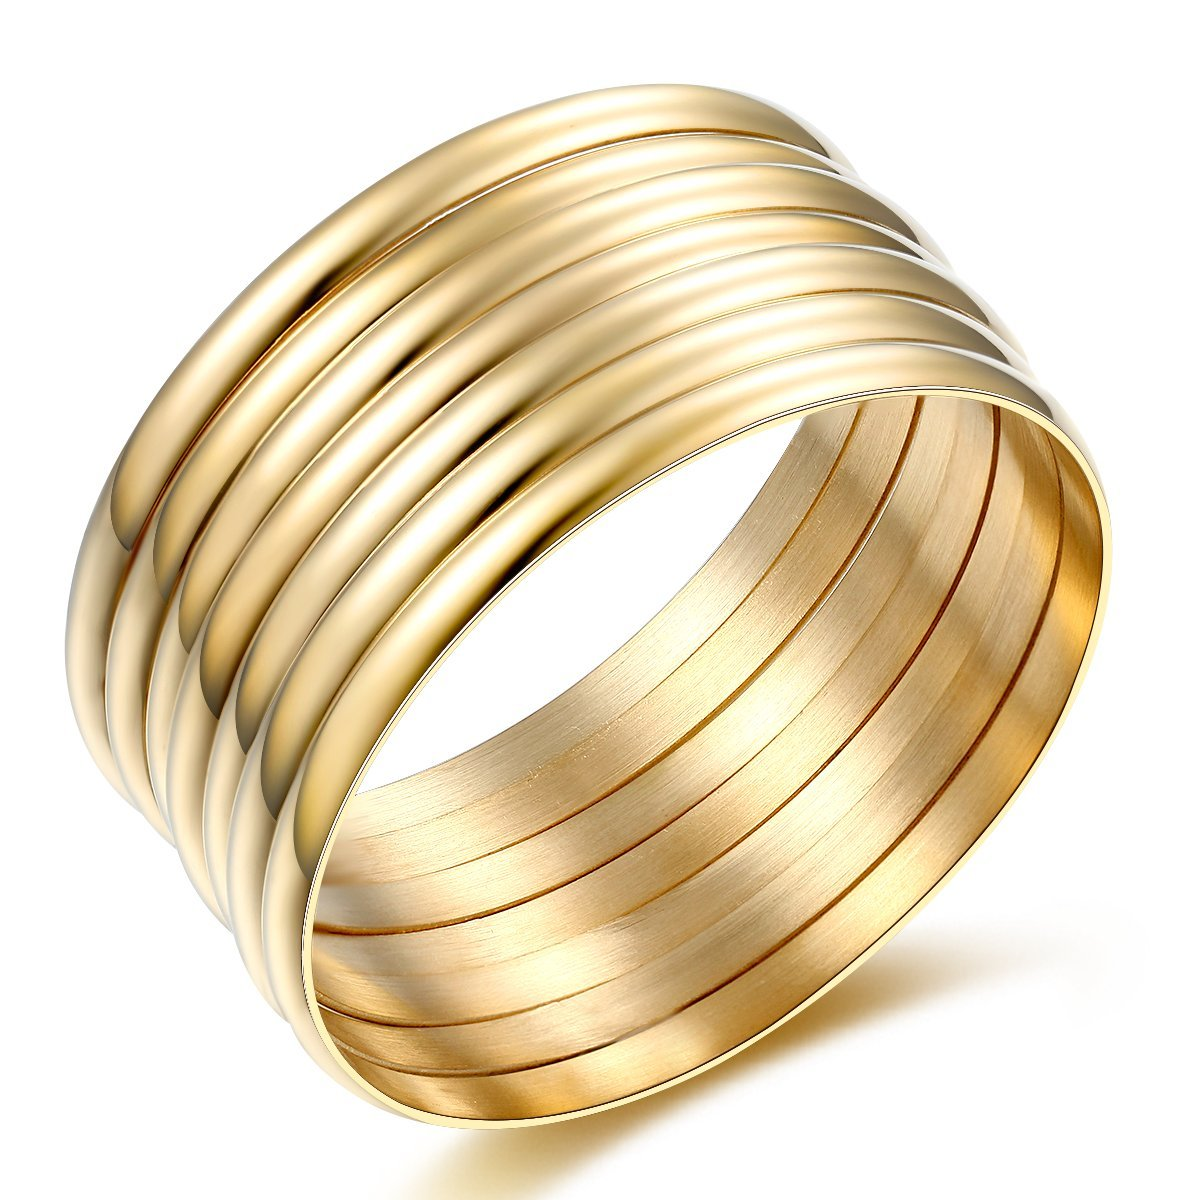 Carfeny 14k Gold Plated Stackable Bangle Bracelets for Women 7Pcs/Set,Womens Jewelry by Carfeny